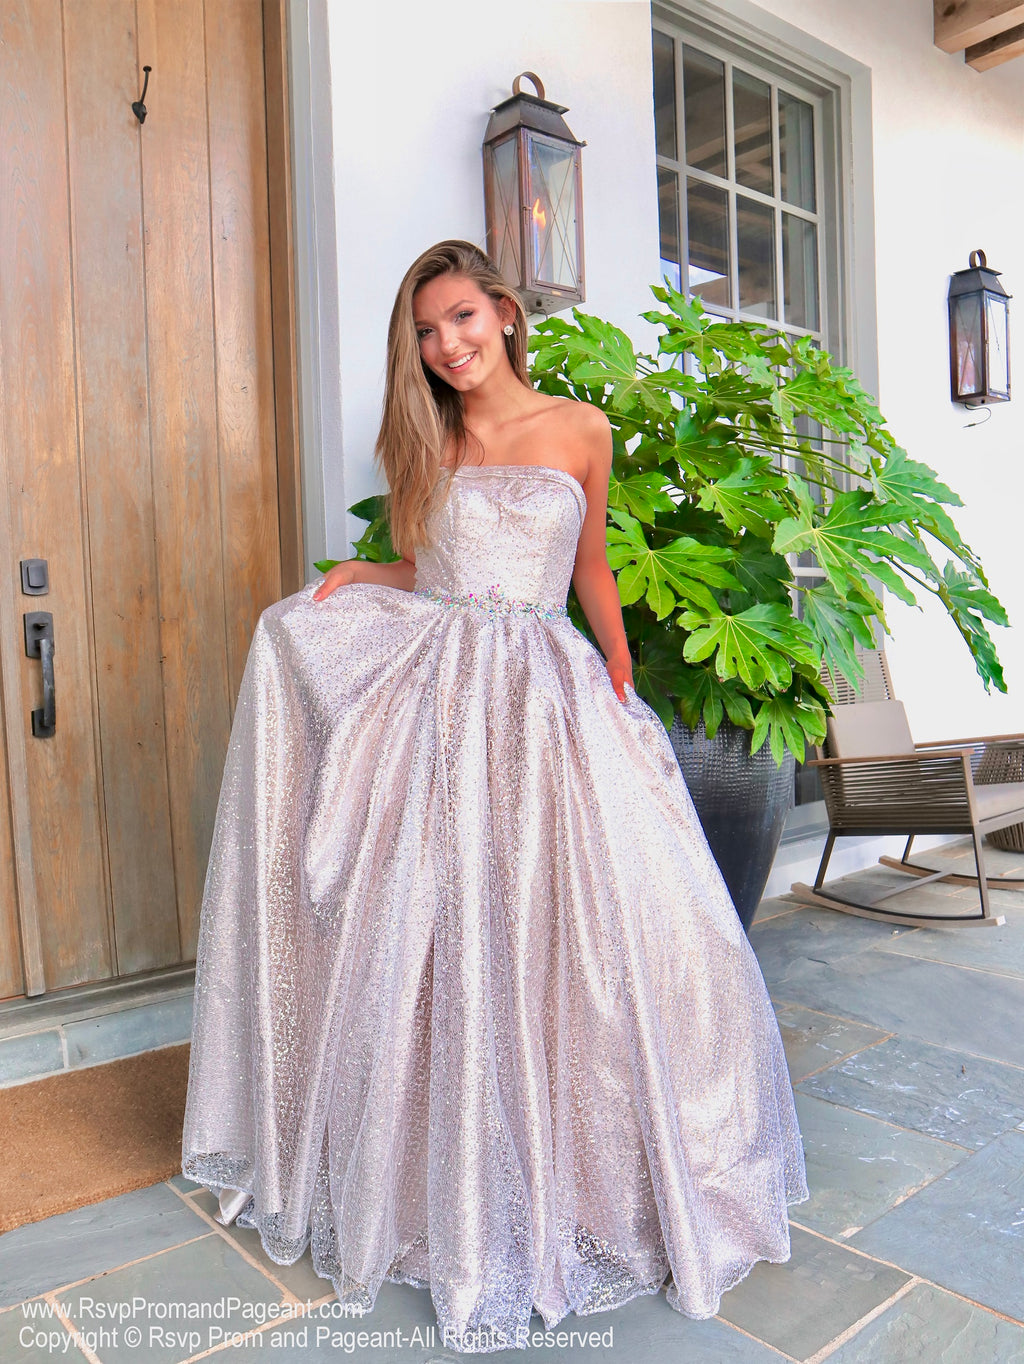 Beautiful model in a Iridescent Shimmering Sequin Ball Gown at Rsvp Prom and Pageant, the most visited prom dress store located in Atlanta, Georgia and also known as Promheaven